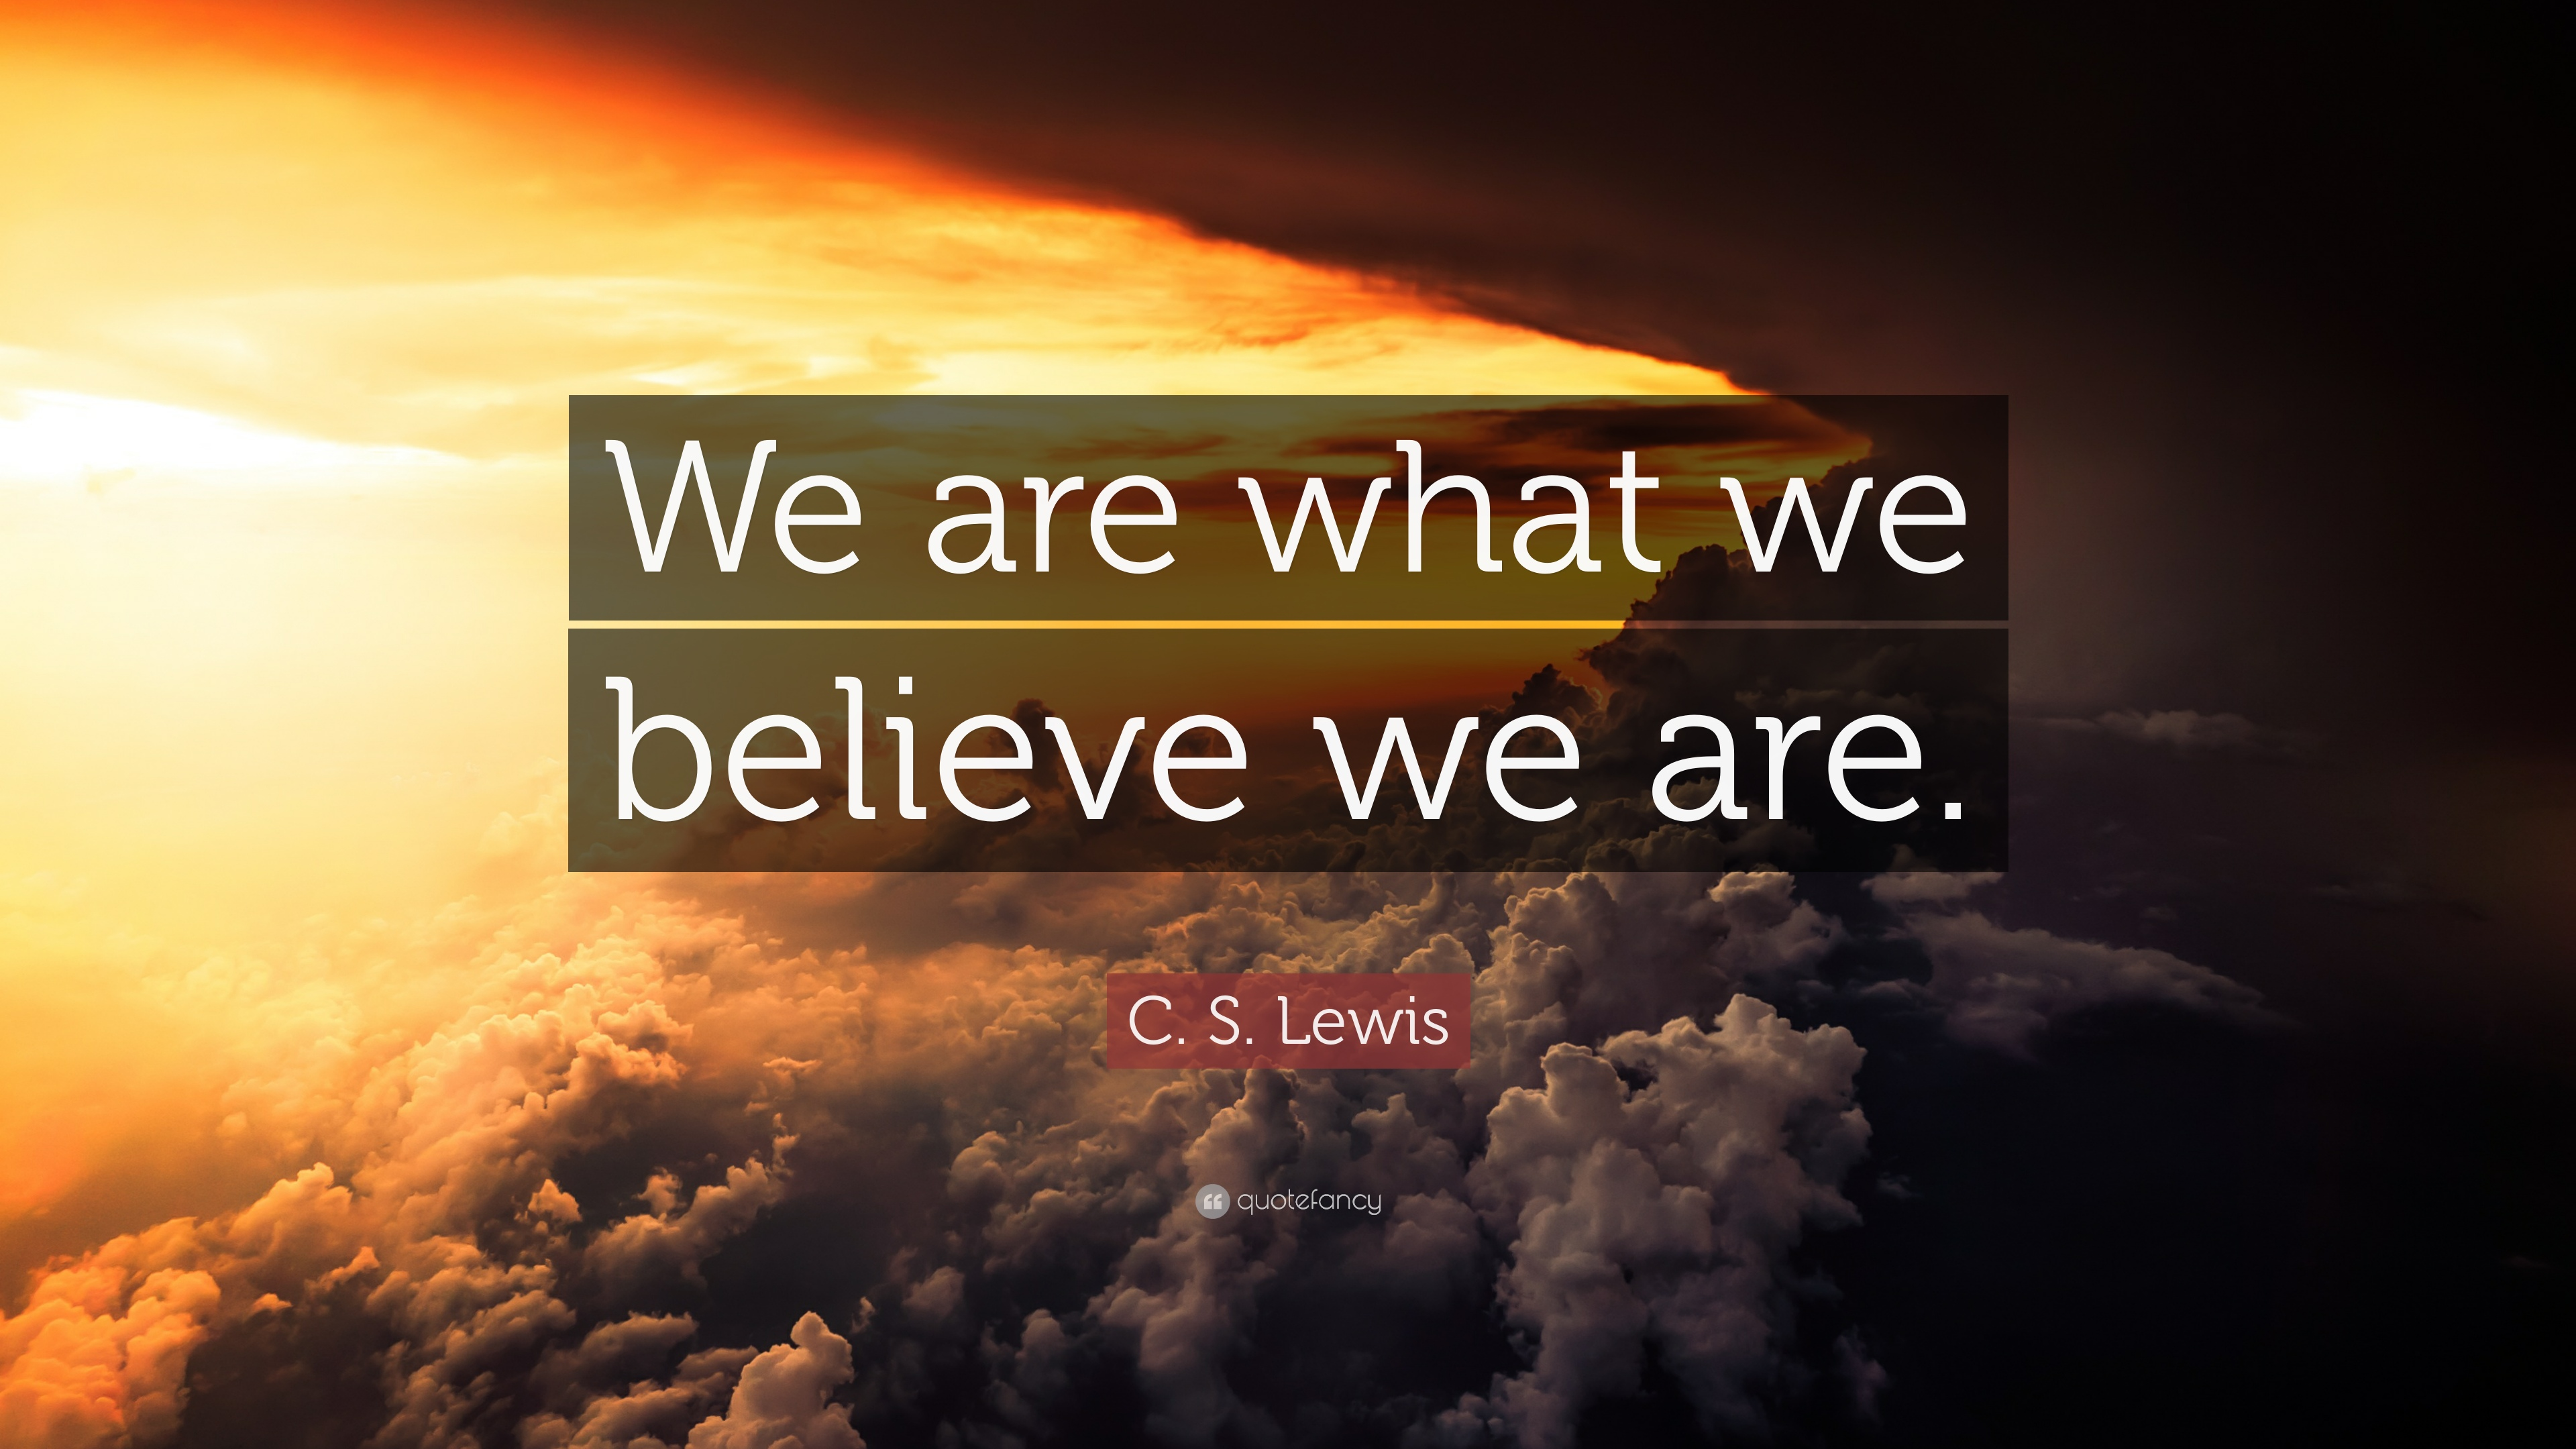 Henry David Thoreau Wallpaper Quote C S Lewis Quote We Are What We Believe We Are 21